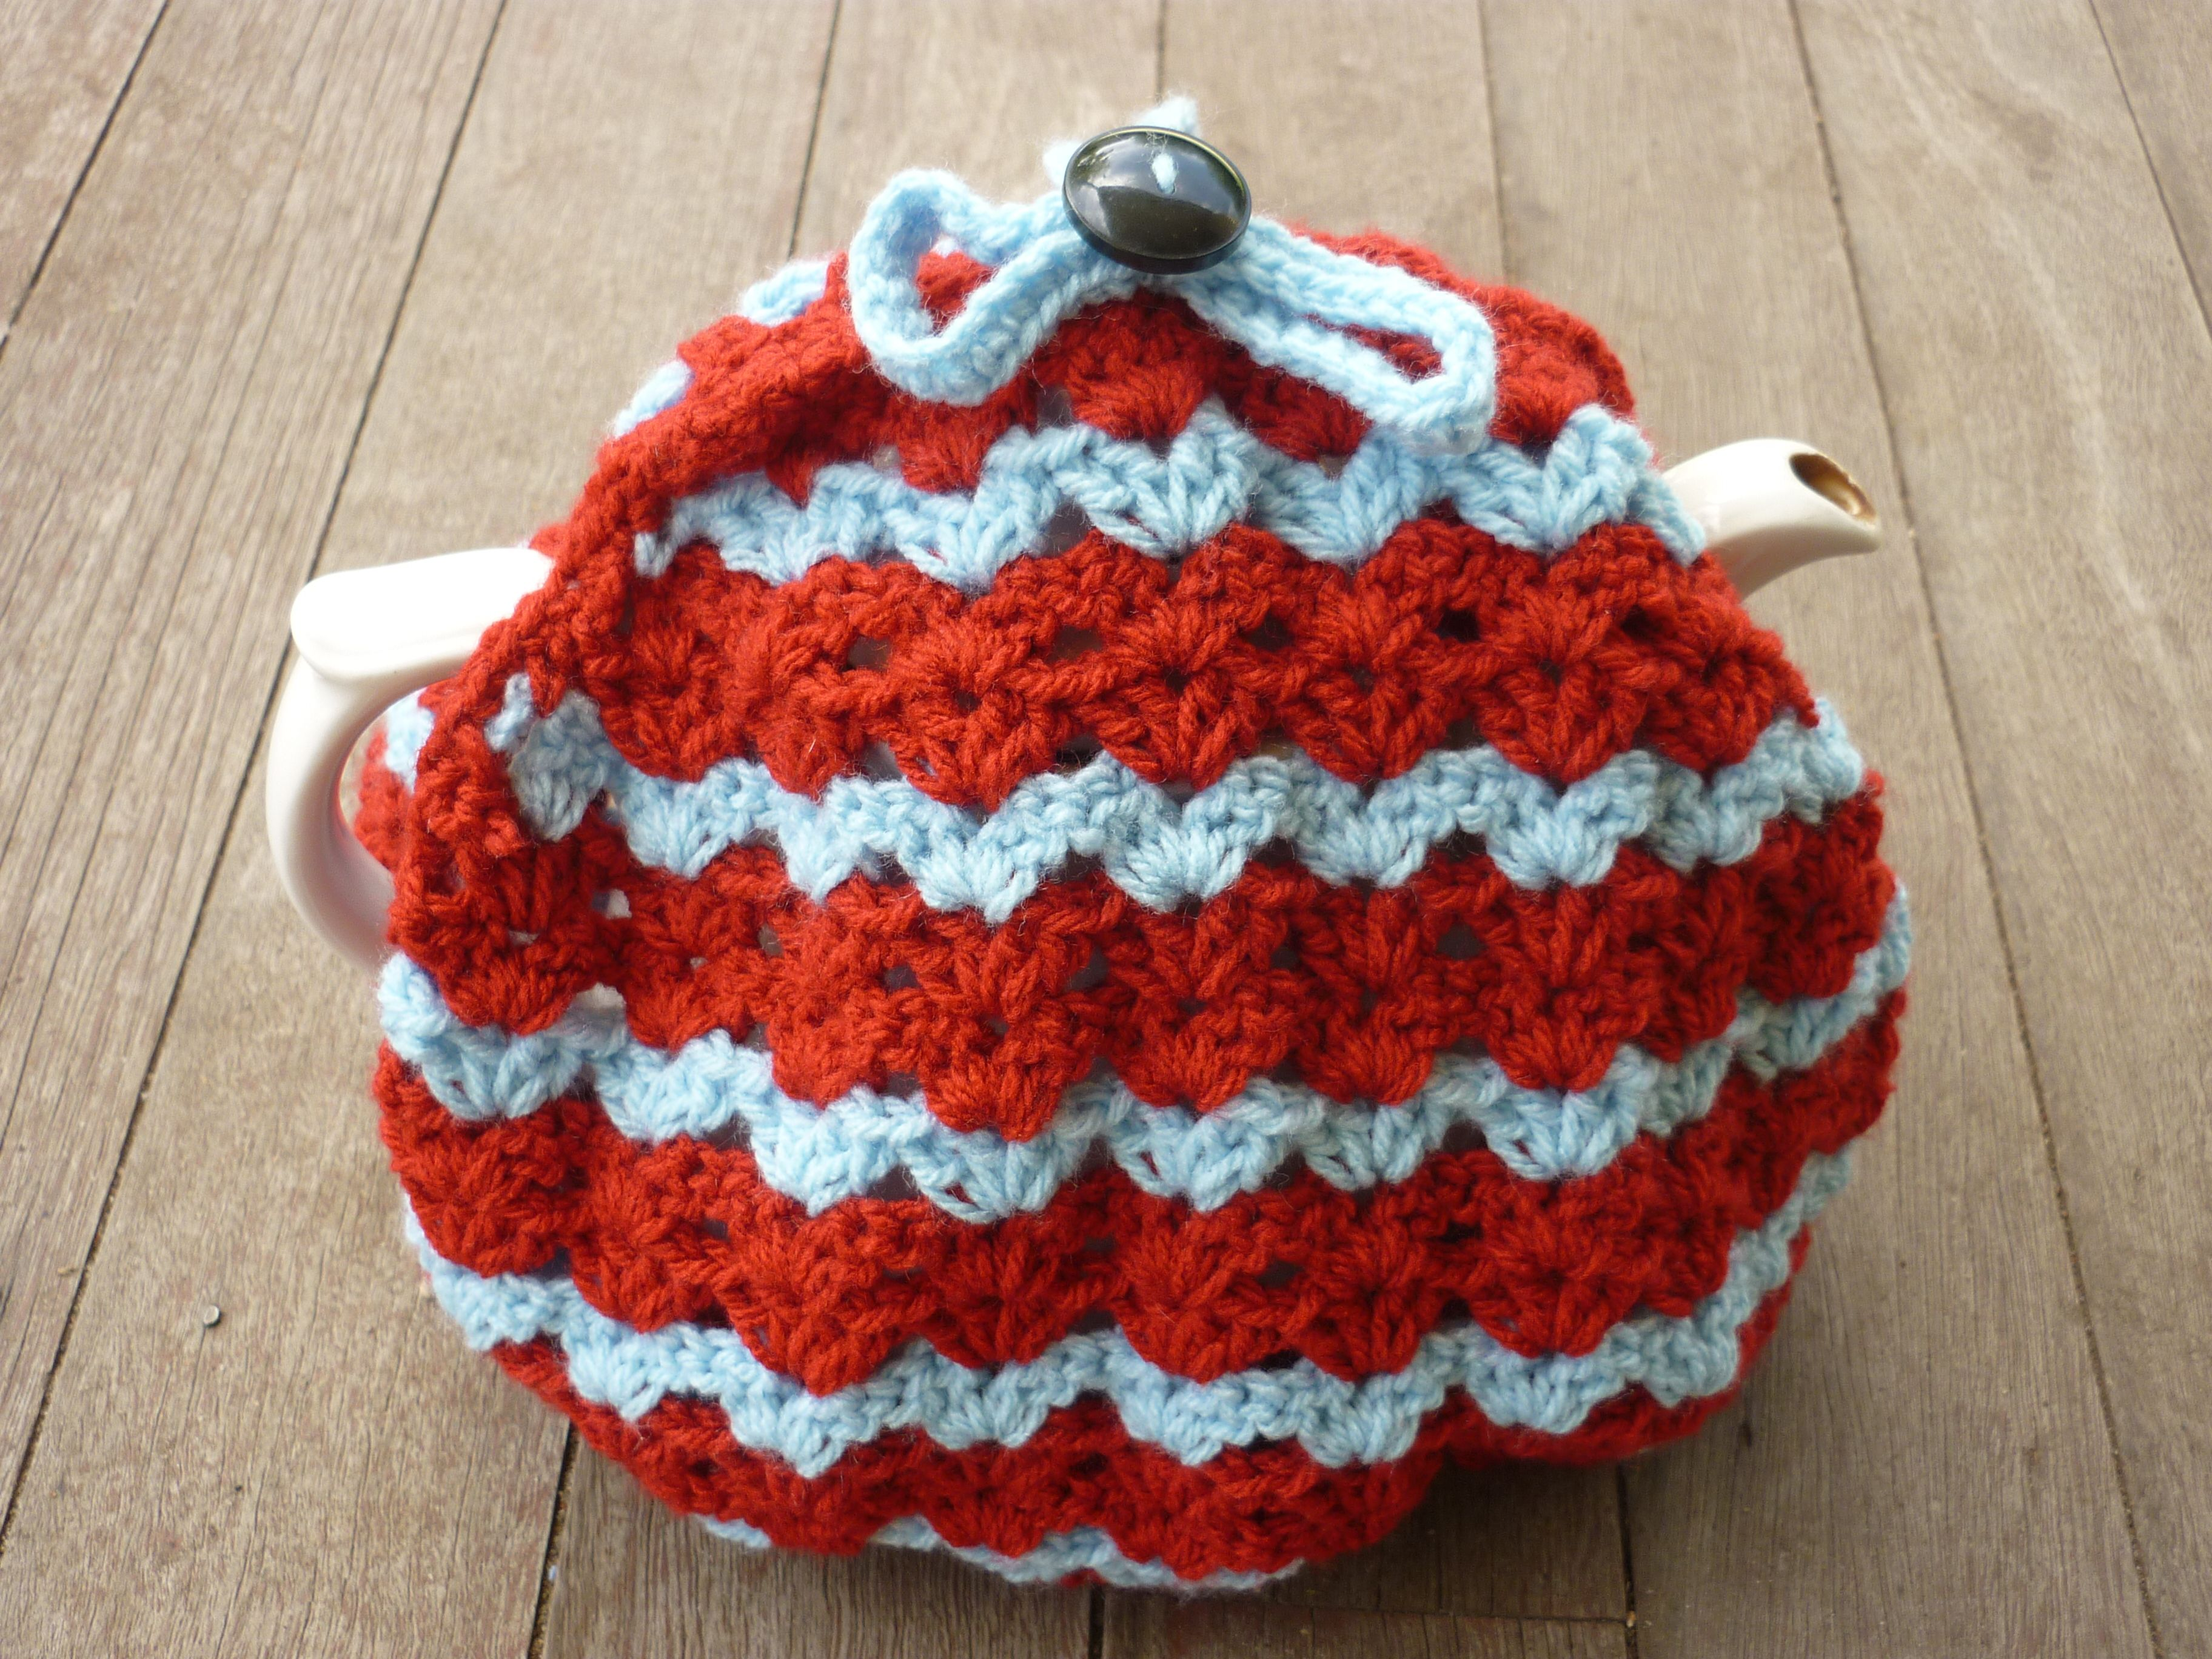 Caravan tea cosy finished december 2013 easy pattern to follow caravan tea cosy by val landewee free pattern courtesy of emma varnam bankloansurffo Images